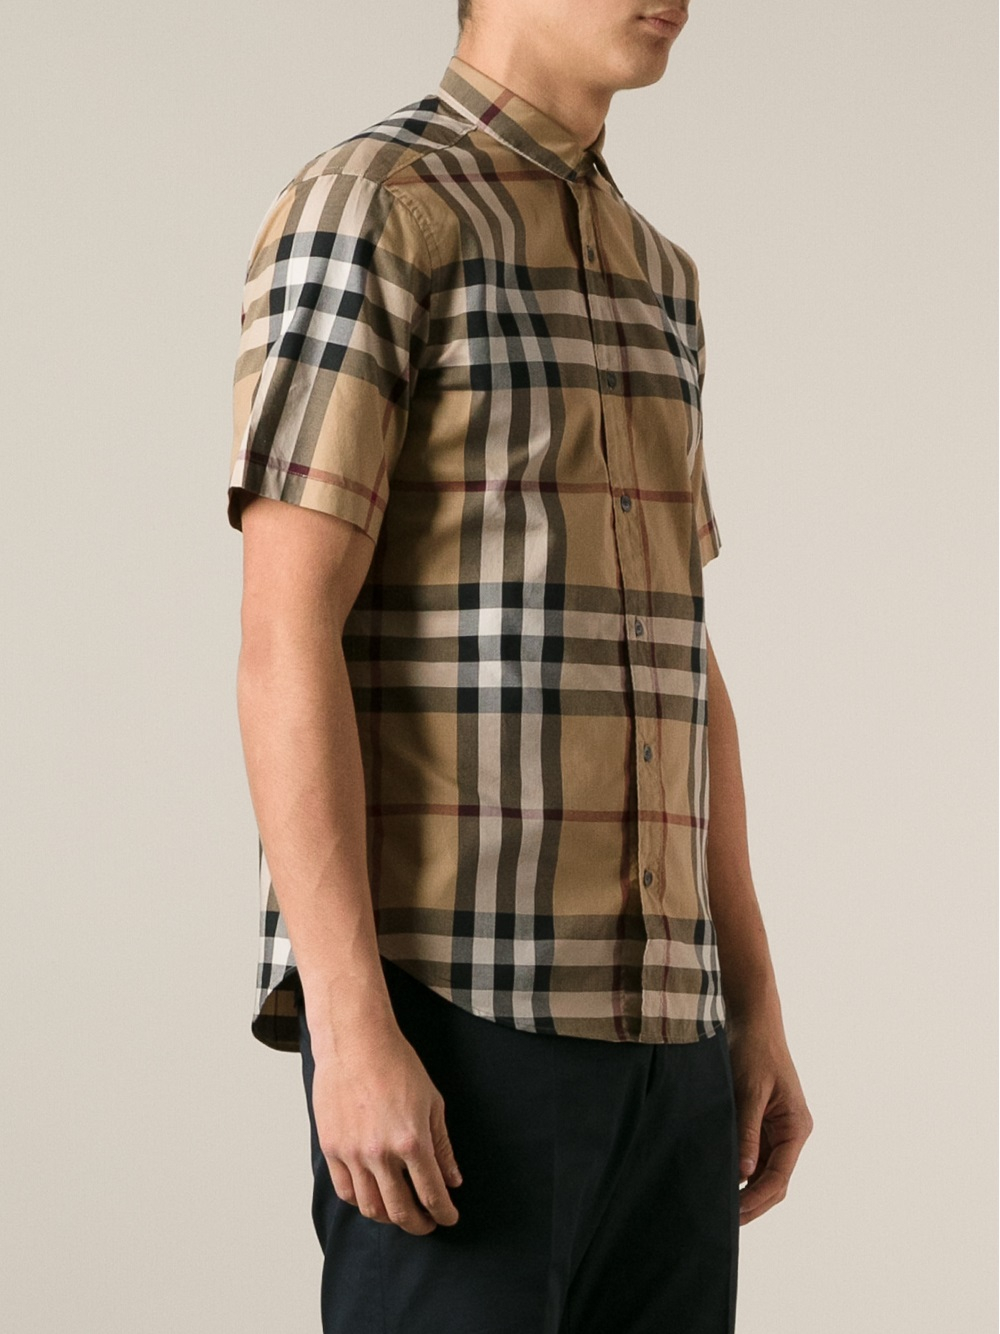 Lyst - Burberry Brit Checked Shirt in Natural for Men